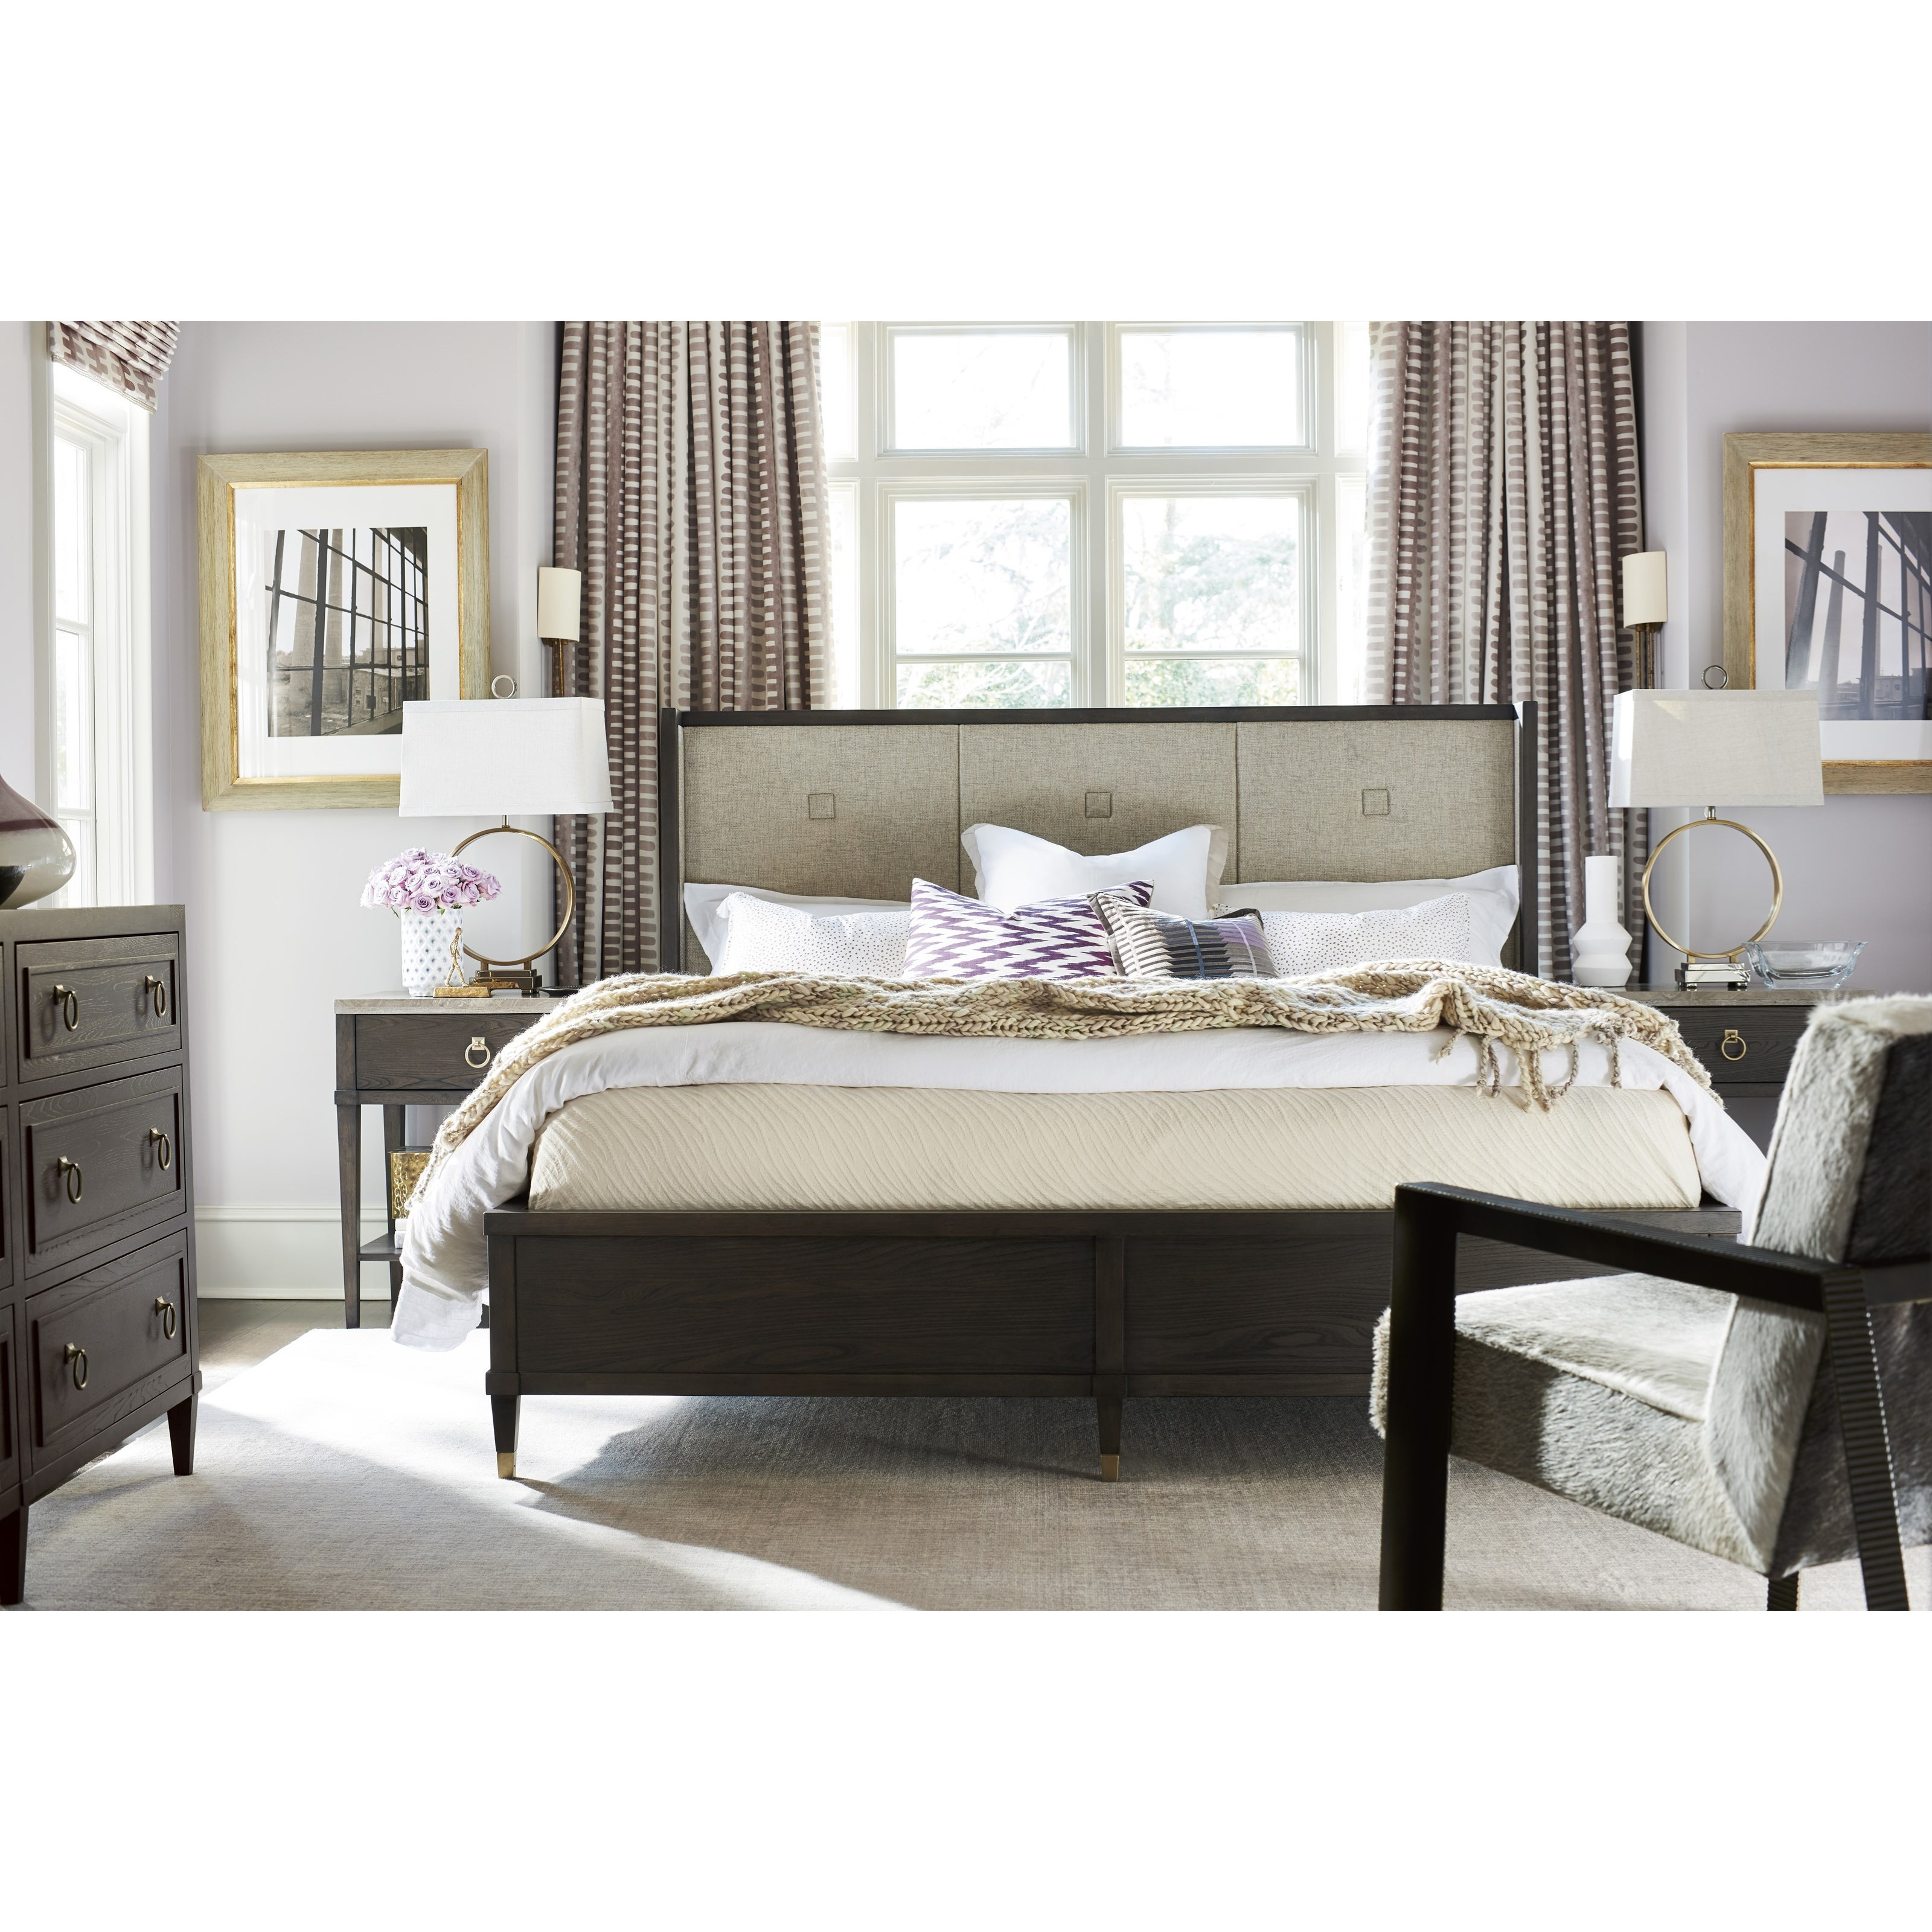 Soliloquy King Bedroom Group by Universal at Baer's Furniture